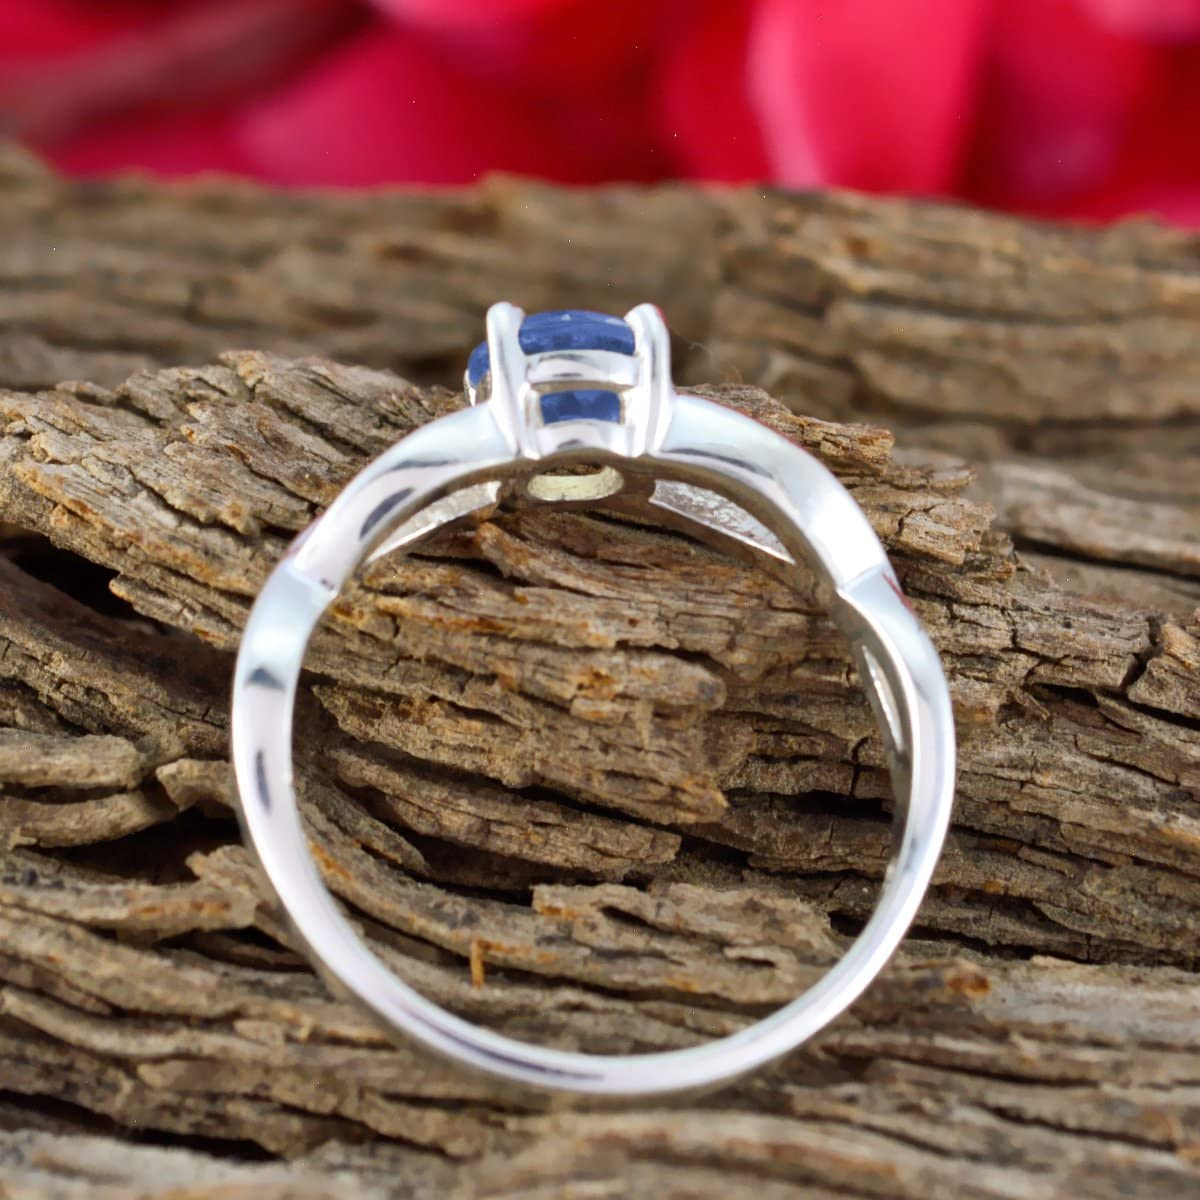 Sterling Silver Blue Iolite Natural Gemstone Ring Handmade Jewelry Most Selling Items Gift for Friend Bridesmaid Gift Natural Gemstone Round Faceted Iolite Rings